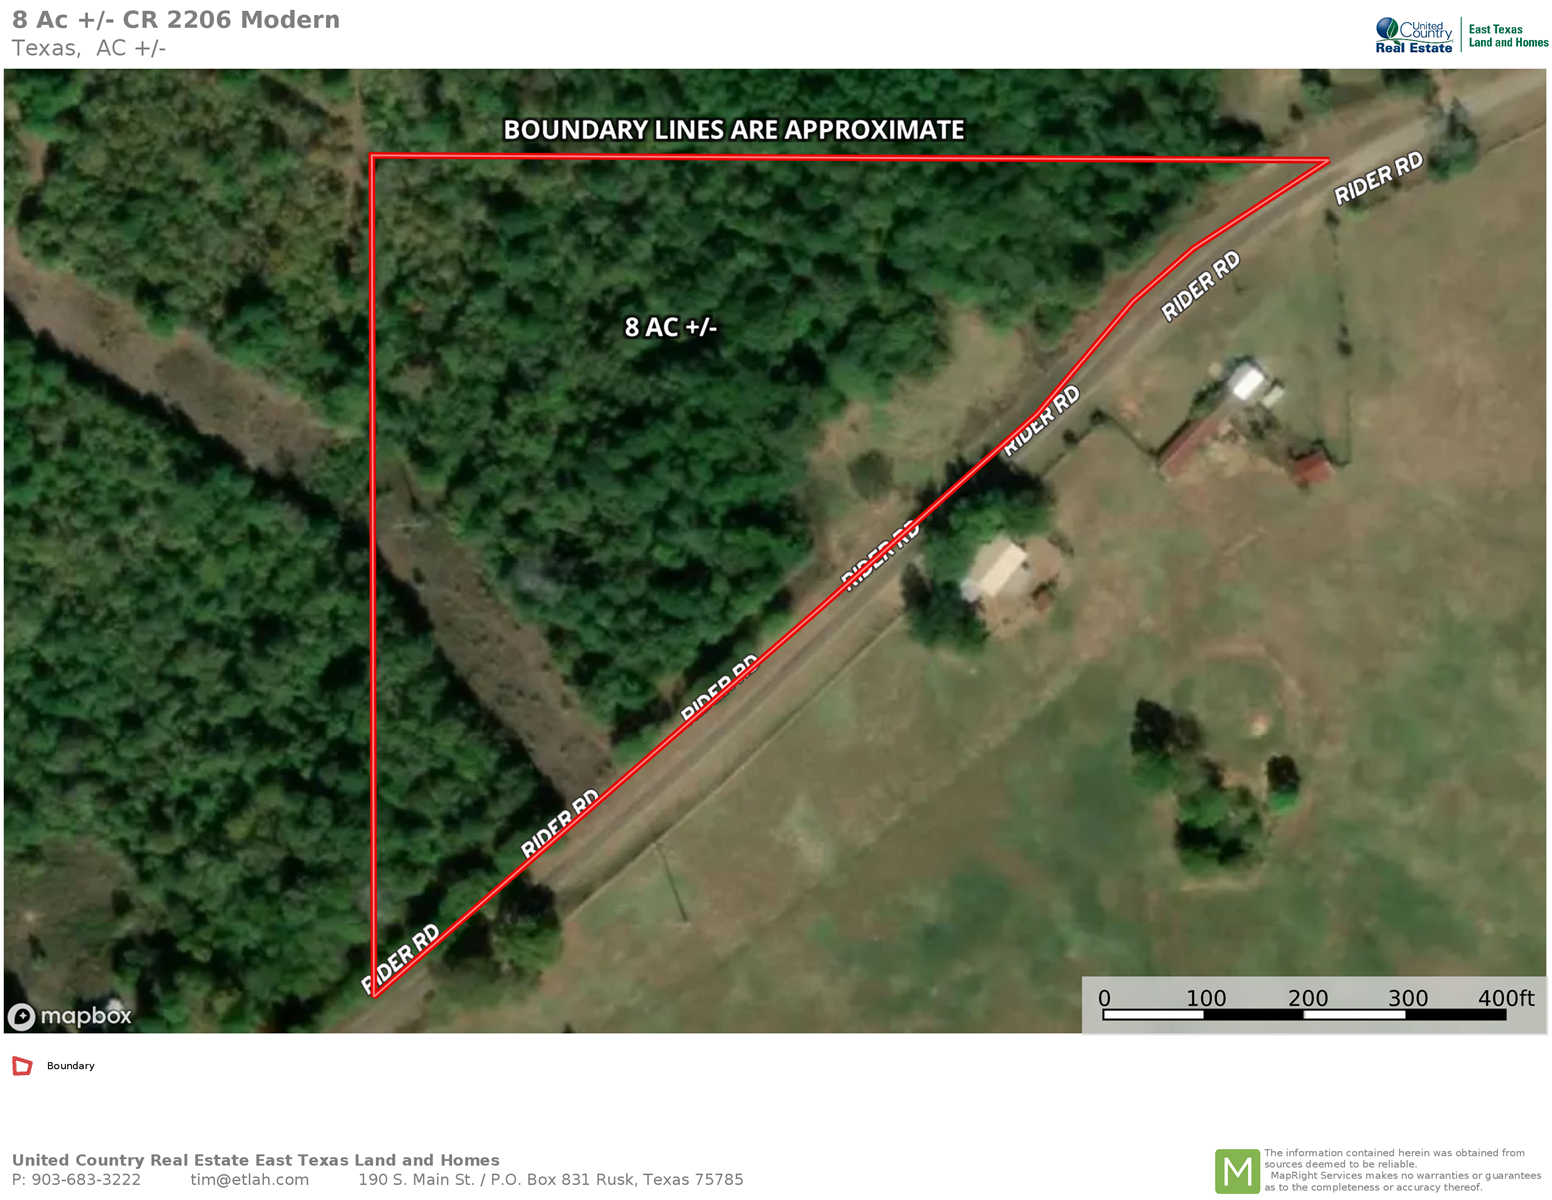 East TX Land for sale, Rusk, TX land for sale